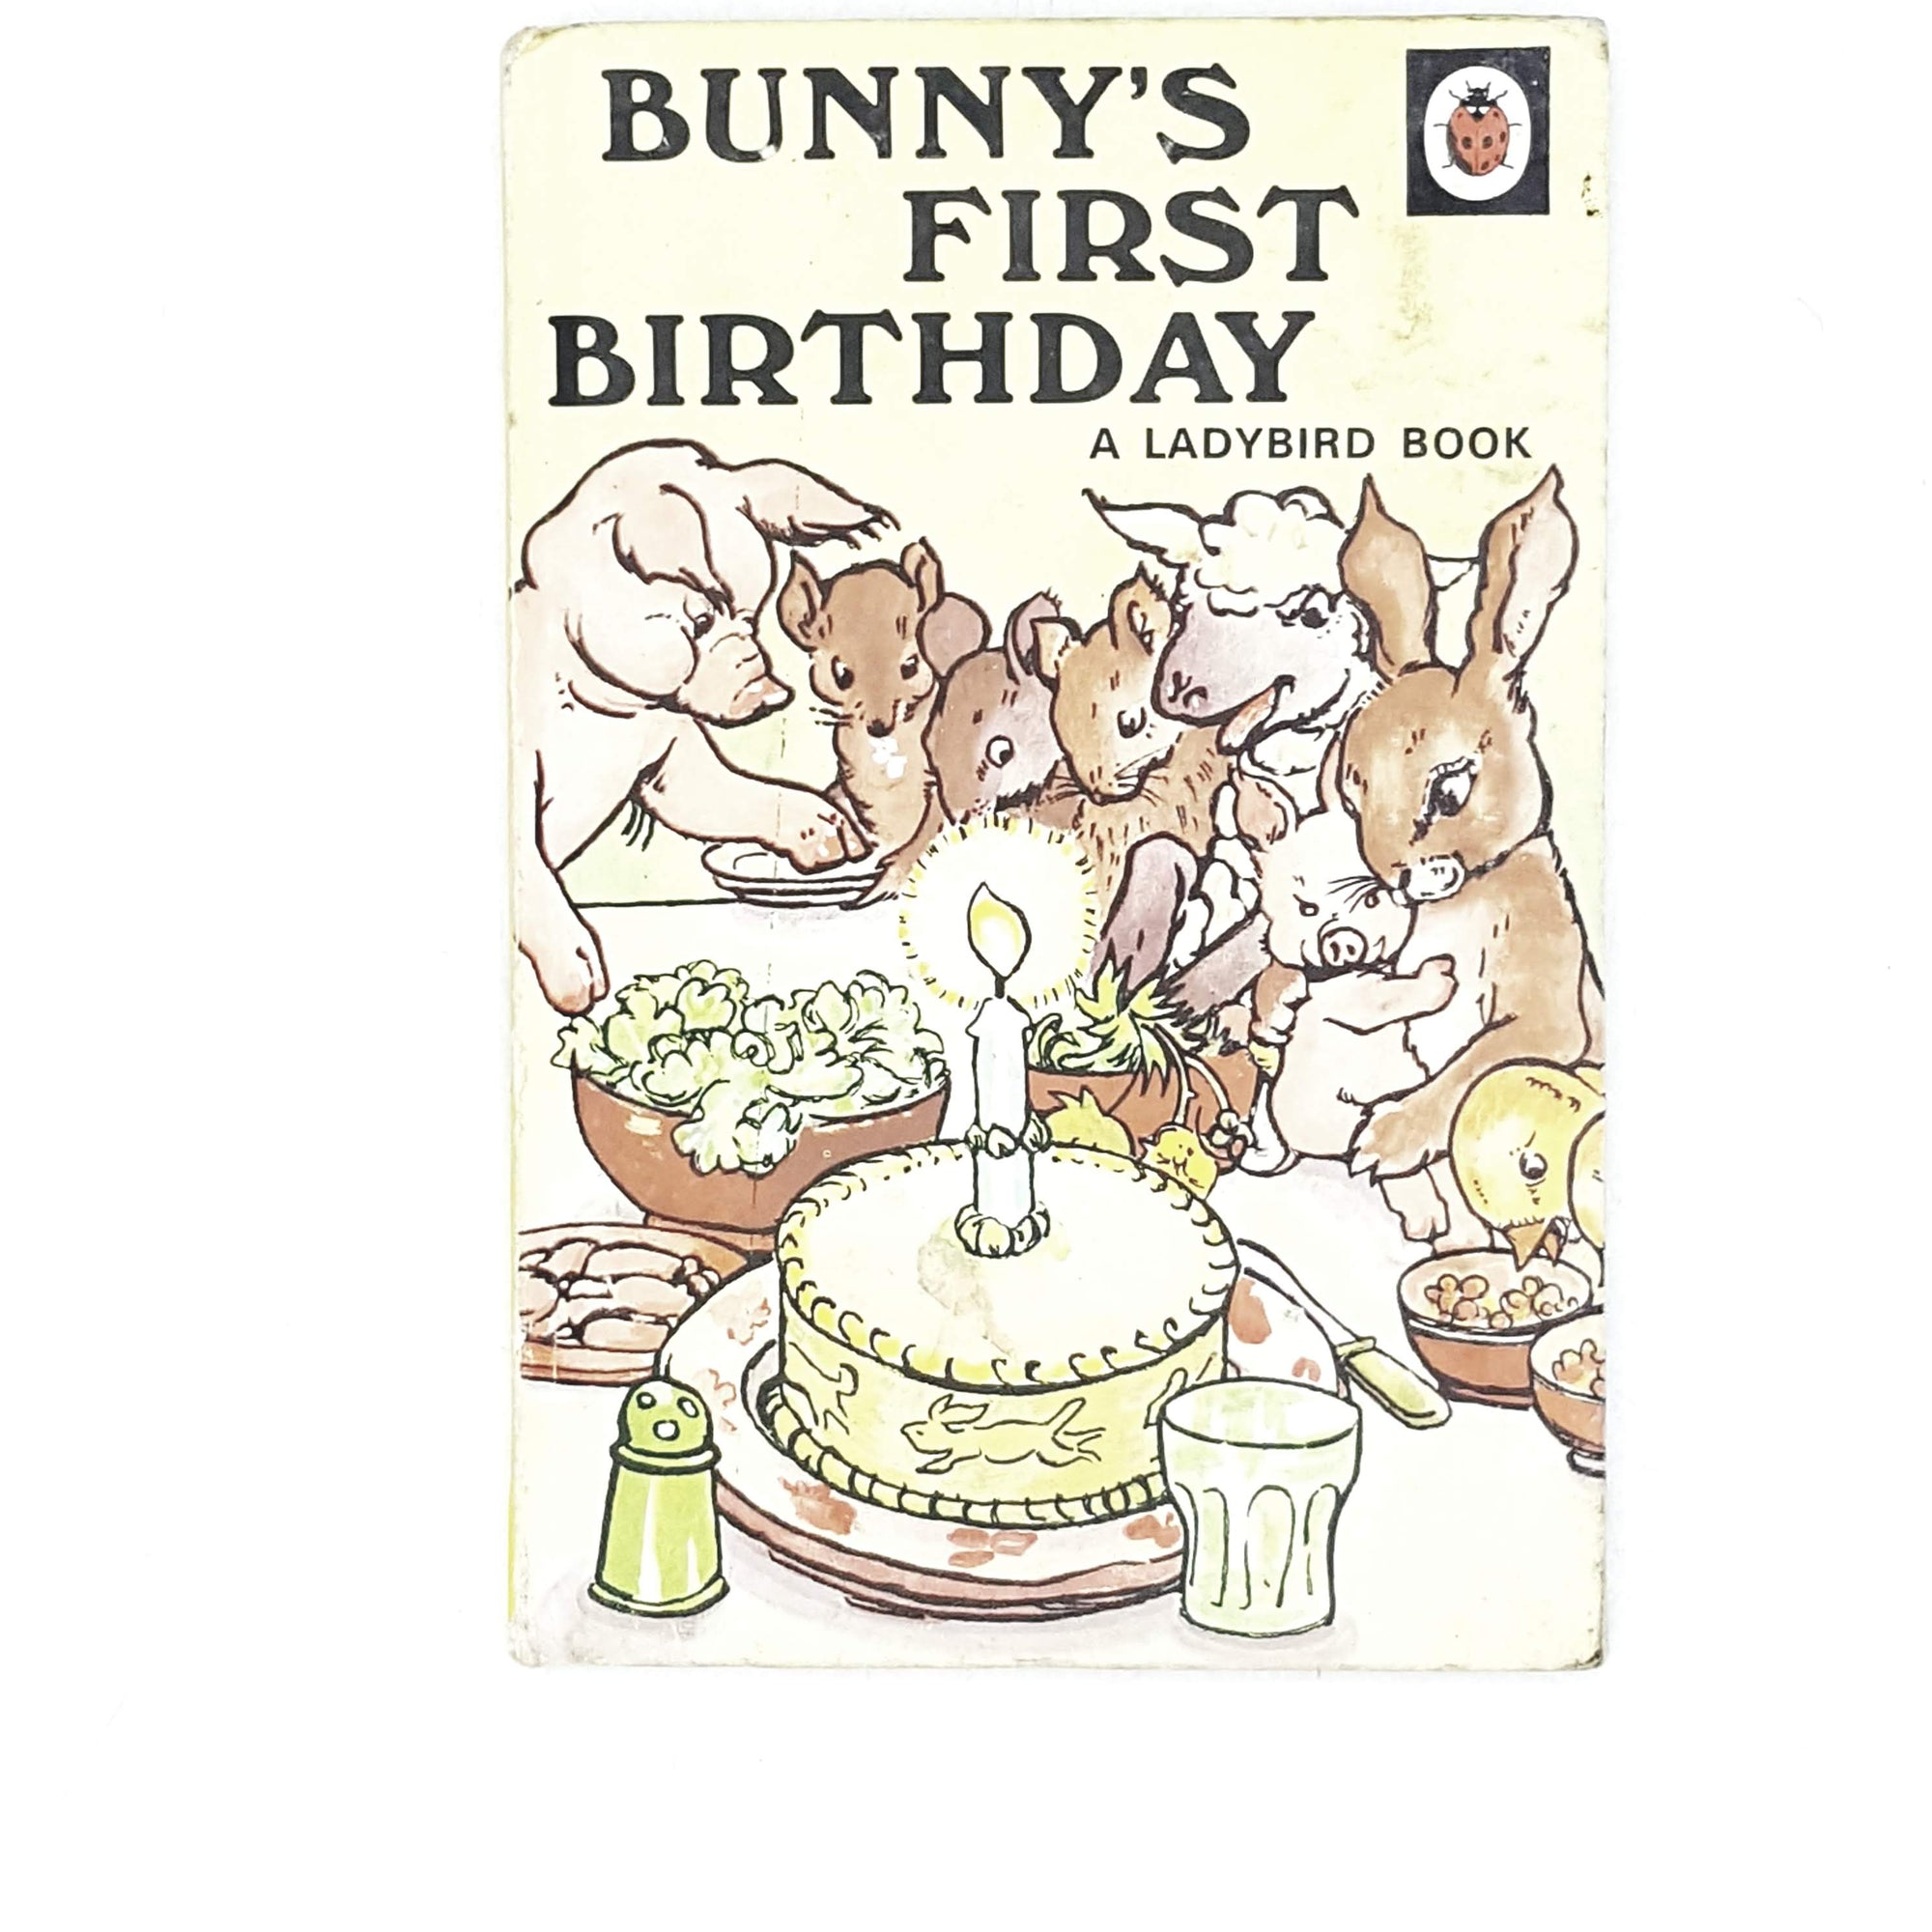 vintage-ladybird-fiction-bunnys-first-birthday-1950-antique-kindergarten-books-country-house-library